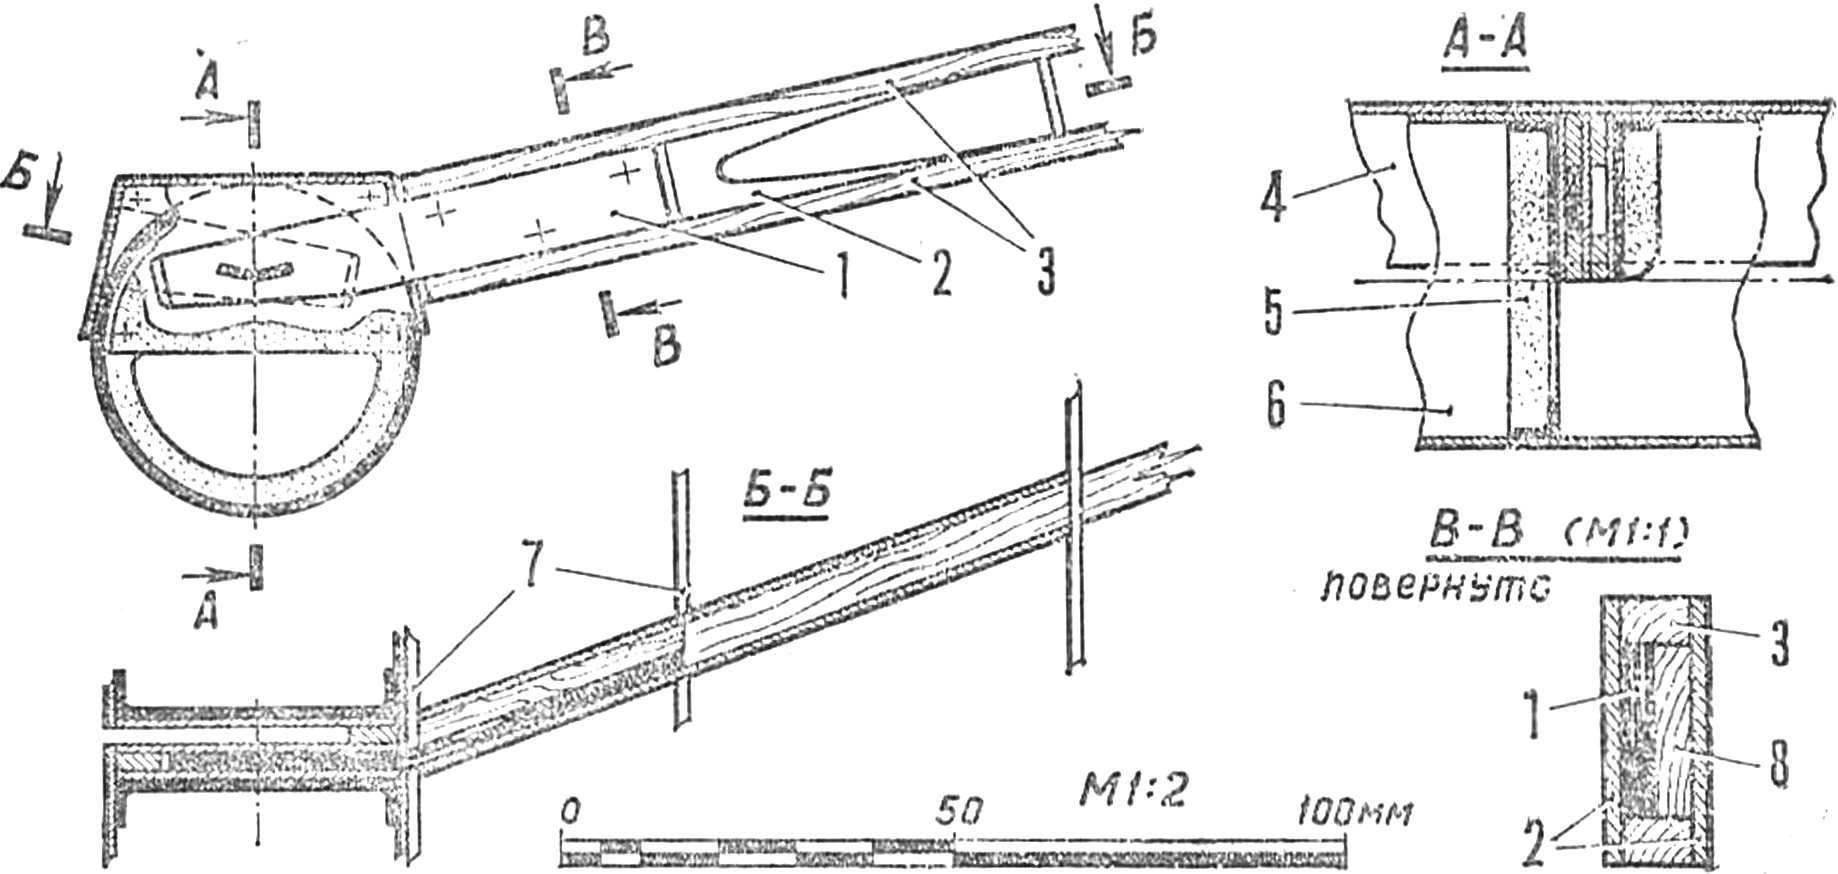 Fig. 3. Knot design hitch wing